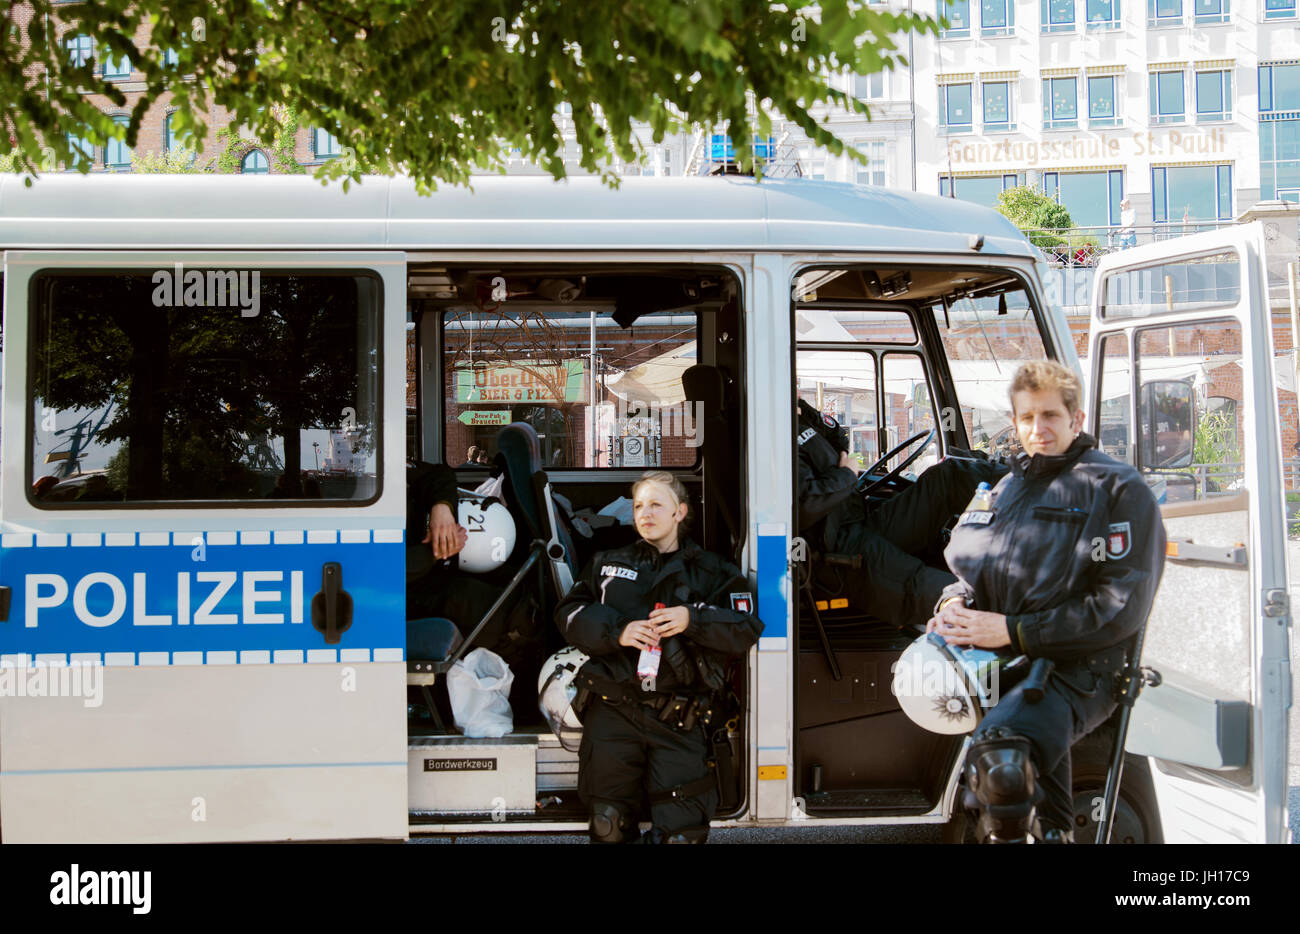 G20 Summit - Stock Image